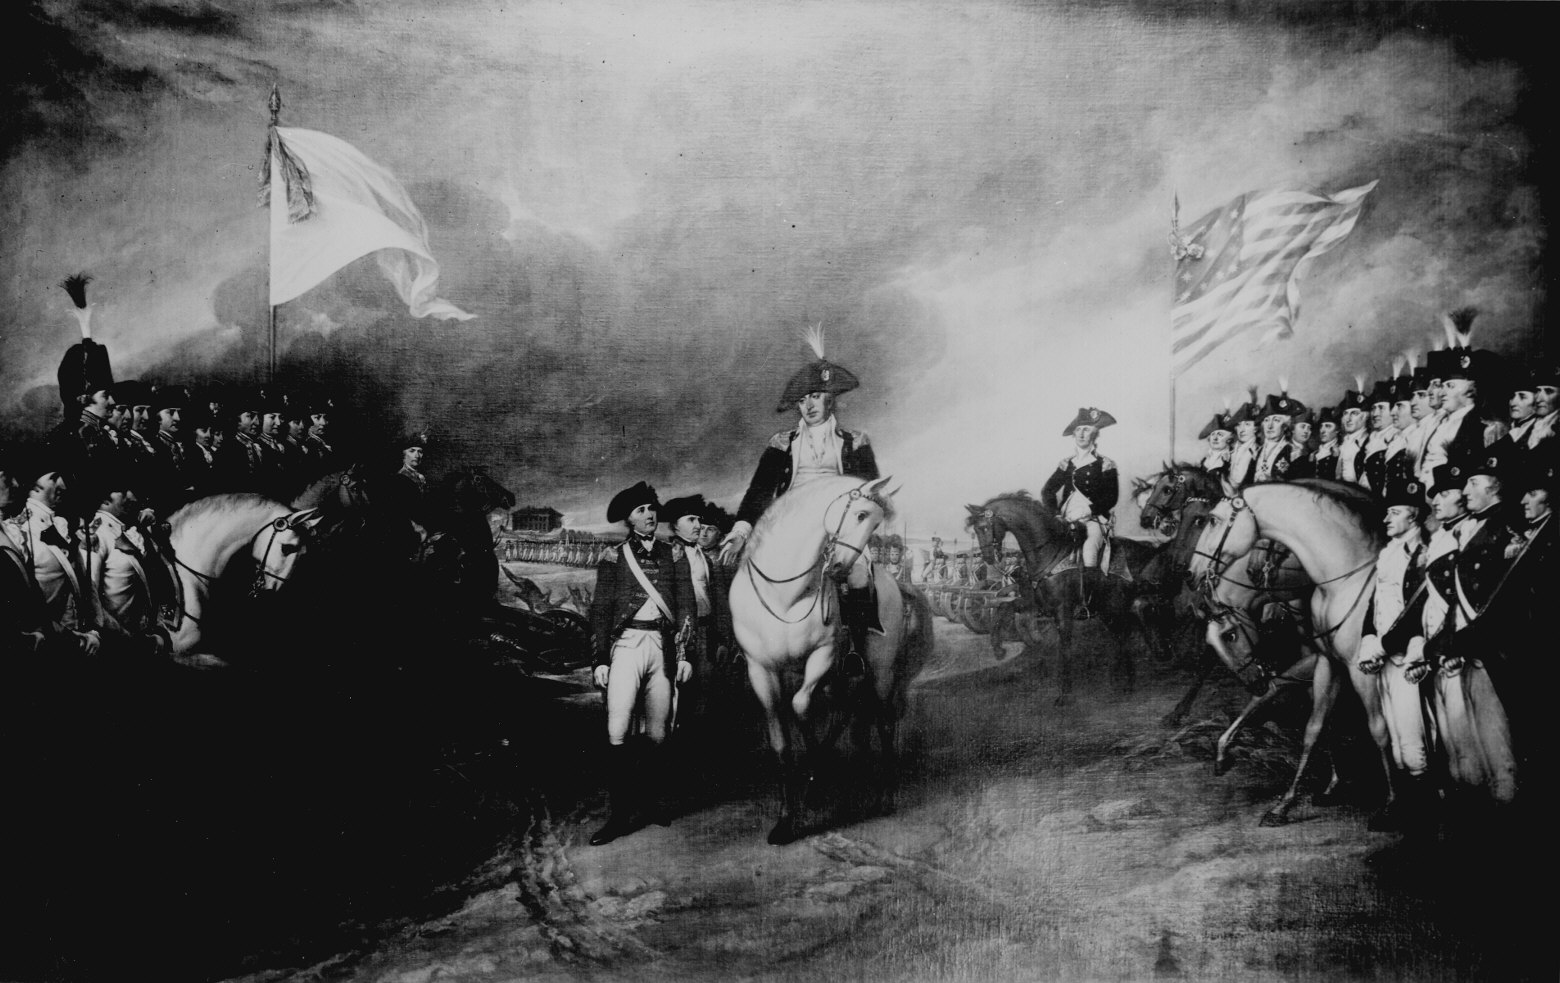 thesis on american revolution Causes of the american revolution essaysthis essay is about the causes of the american revolution causes of the american revolution fall under four different catagories, which are religious, social, economic, and political.